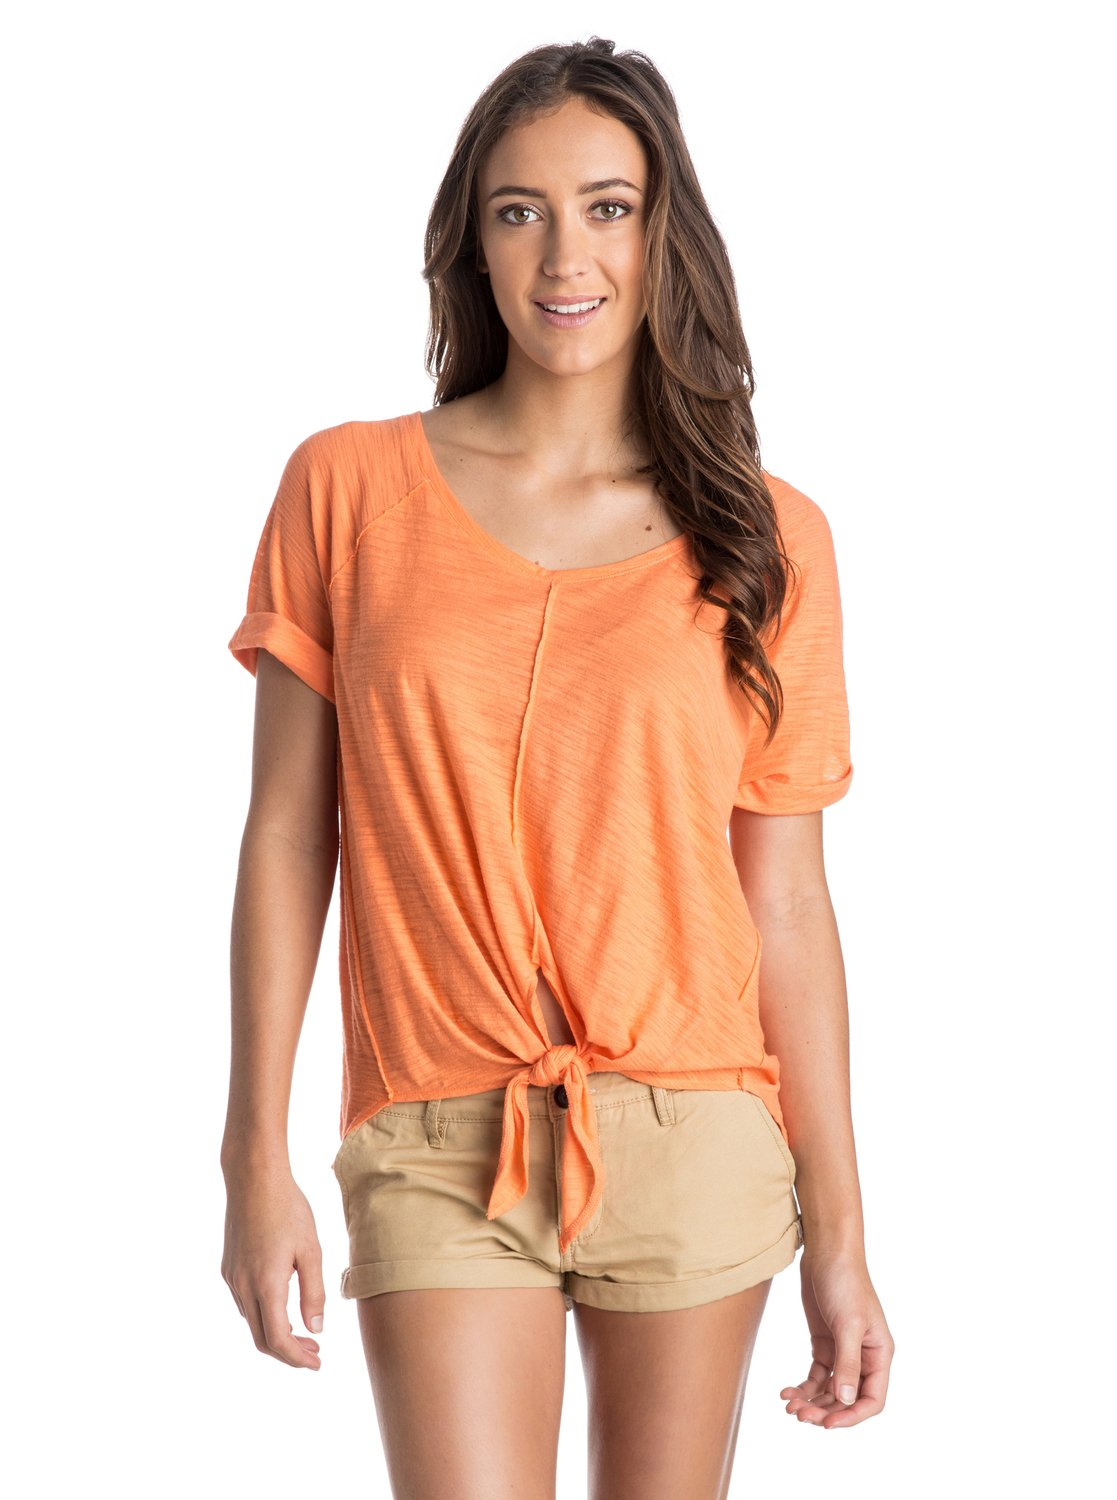 middle ranch front tie top arjkt03116